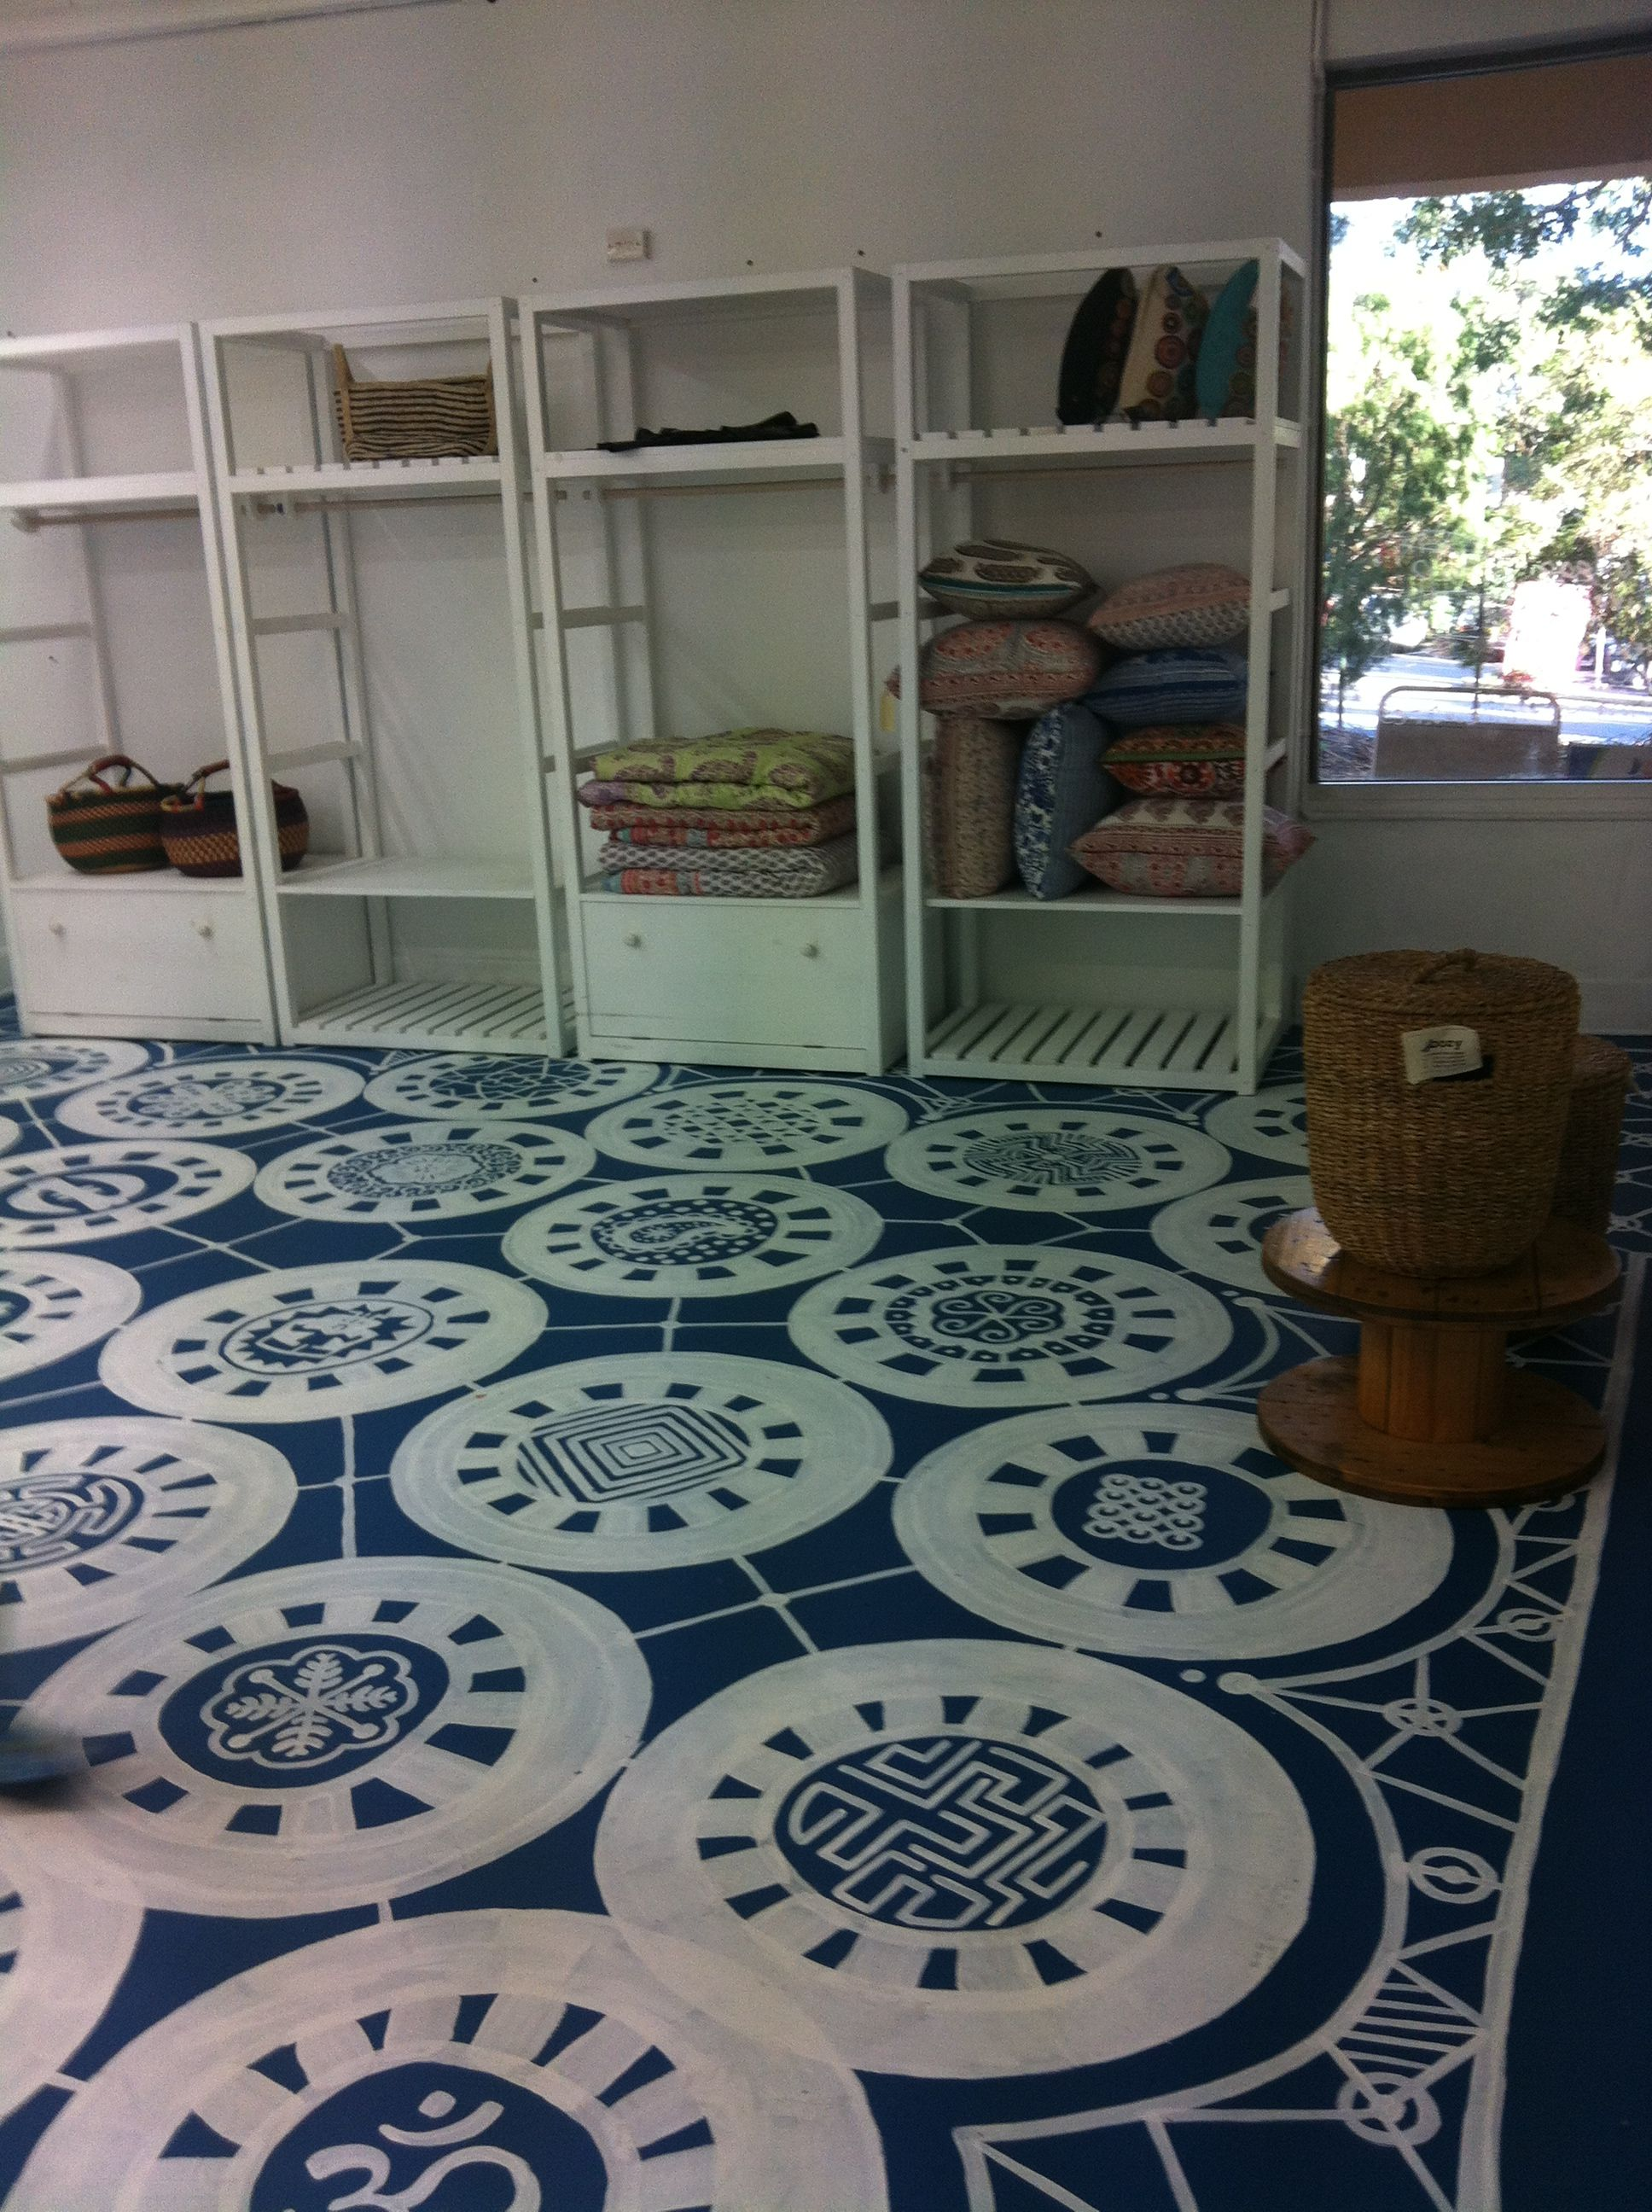 Painted Concrete Floor Base Was Standard Concrete Paint Tinted With Blue For The Design I Used A Line Ma Painted Concrete Floors Floor Paint Design Flooring